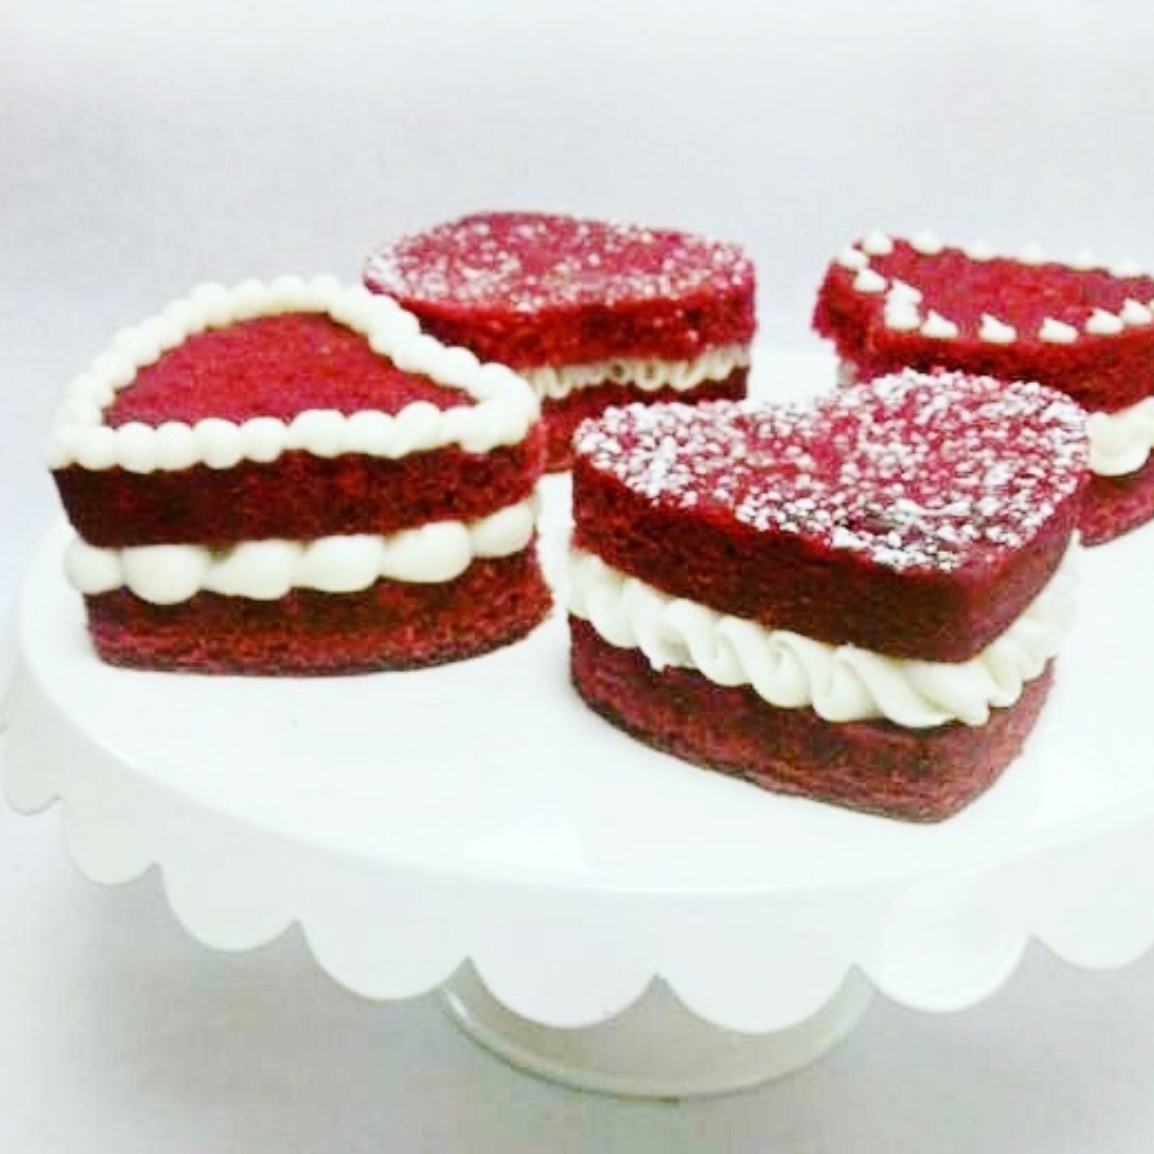 San Antonio bakery Bird, which was founded by Elizabeth Chambers and her husband Armie Hammer, is known for its decadent cookies, bars and cakes, like these adorable heart-shaped red velvet treats. Now a selection of products can be shipped nationwide.   Cakes, cookies and bars from $3.50 each,    Birdbakery.com